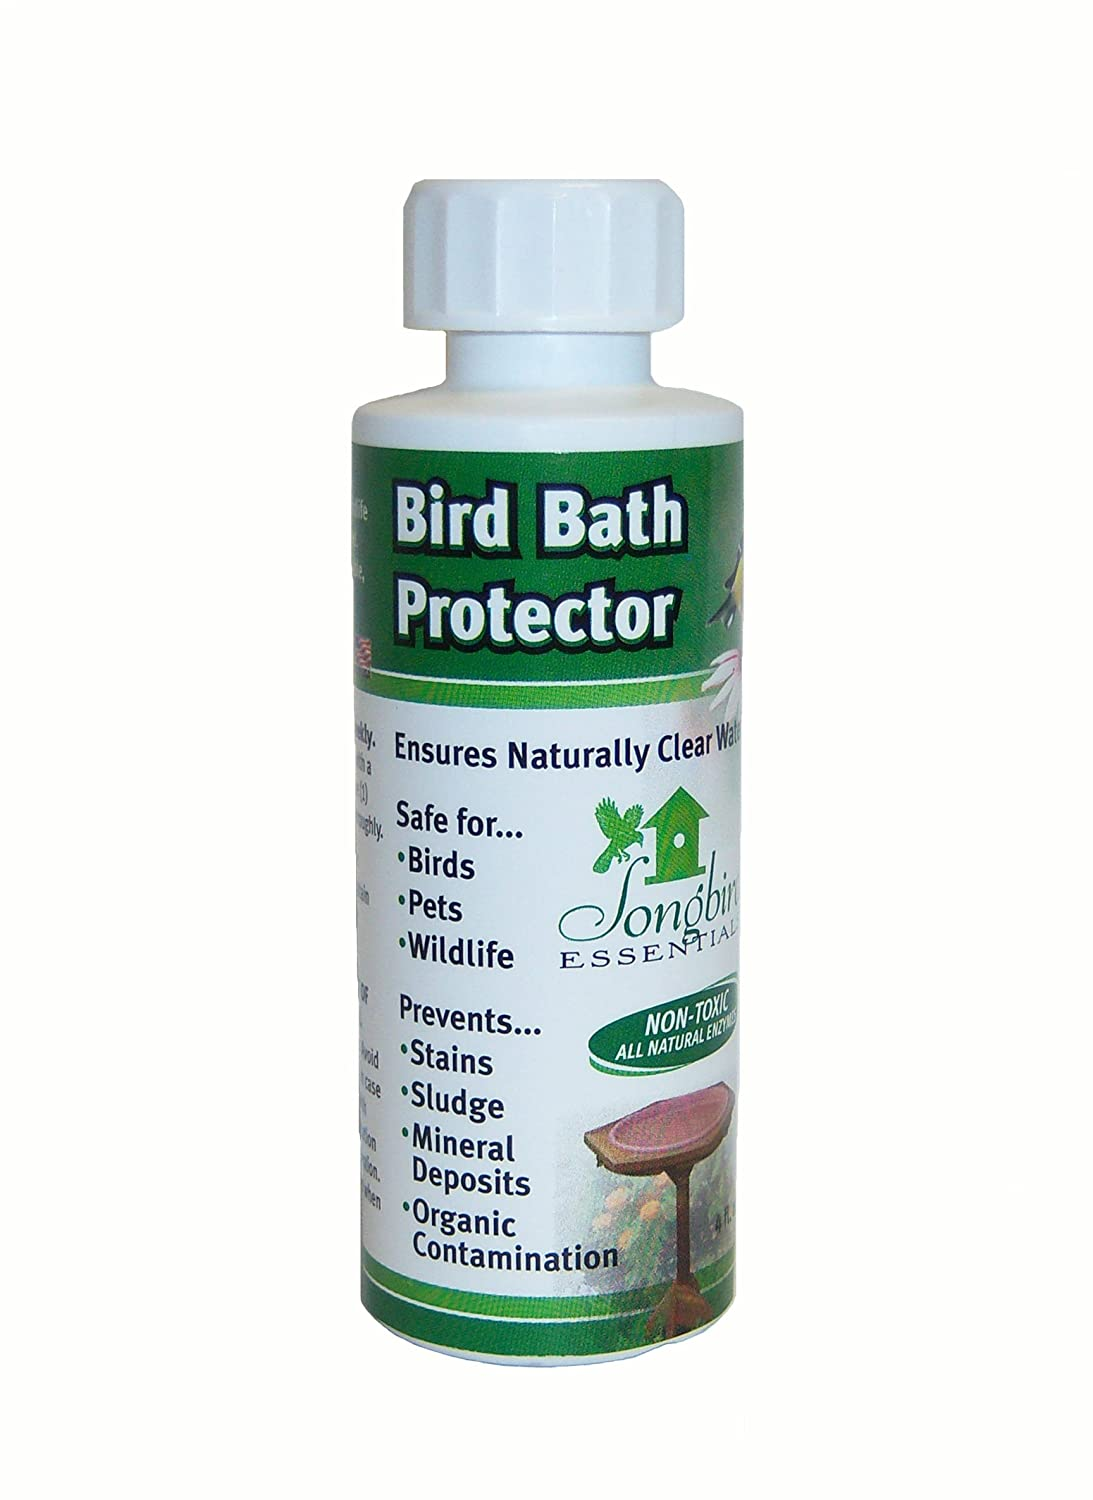 8 oz Birdbath Protector Songbird Essentials